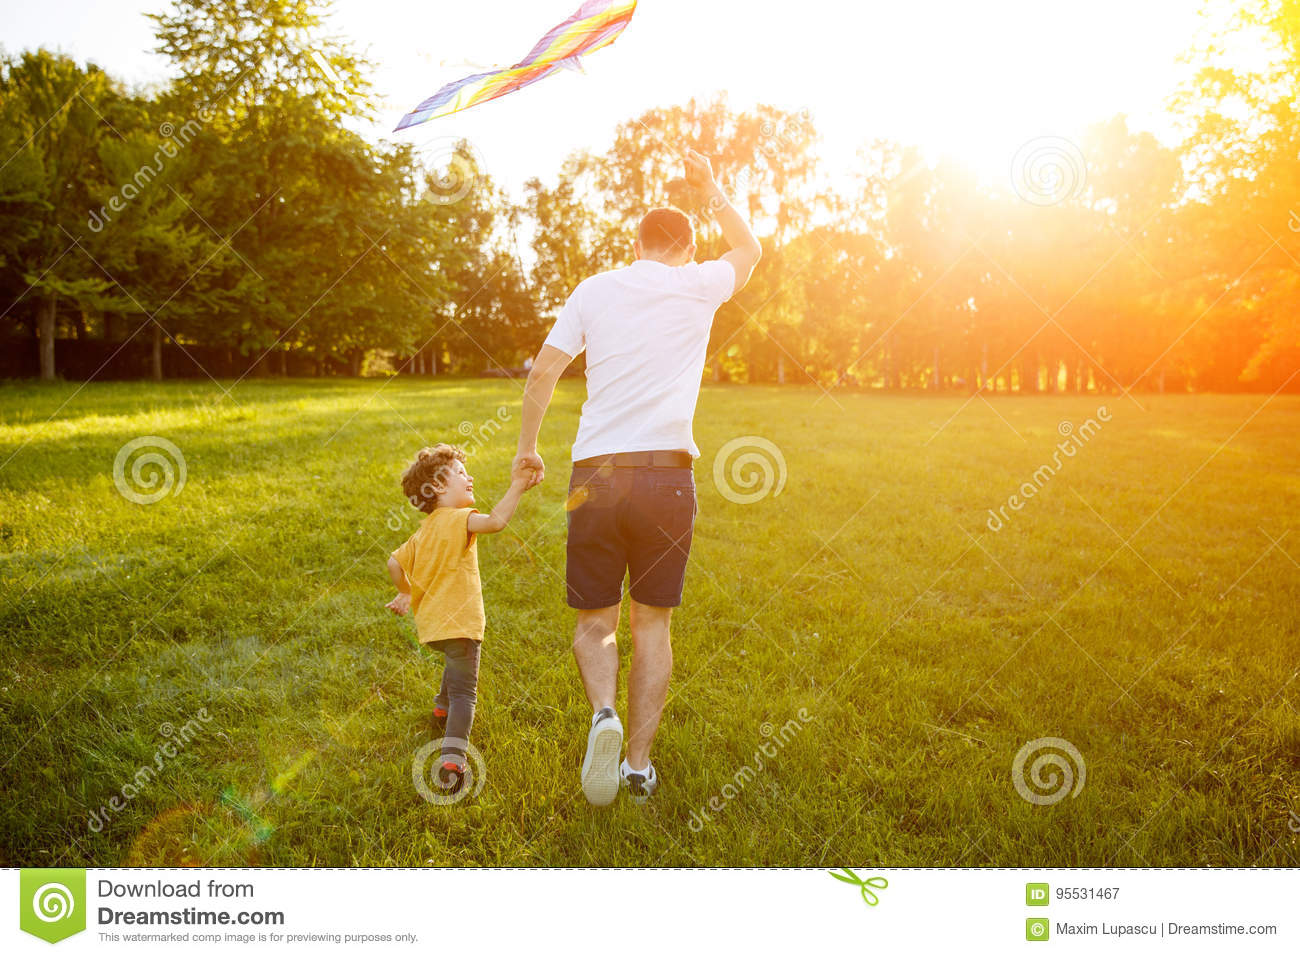 94412016 Father wearing white t-shirt and son dressed in yellow shirt holding hands  launching kite in park running.